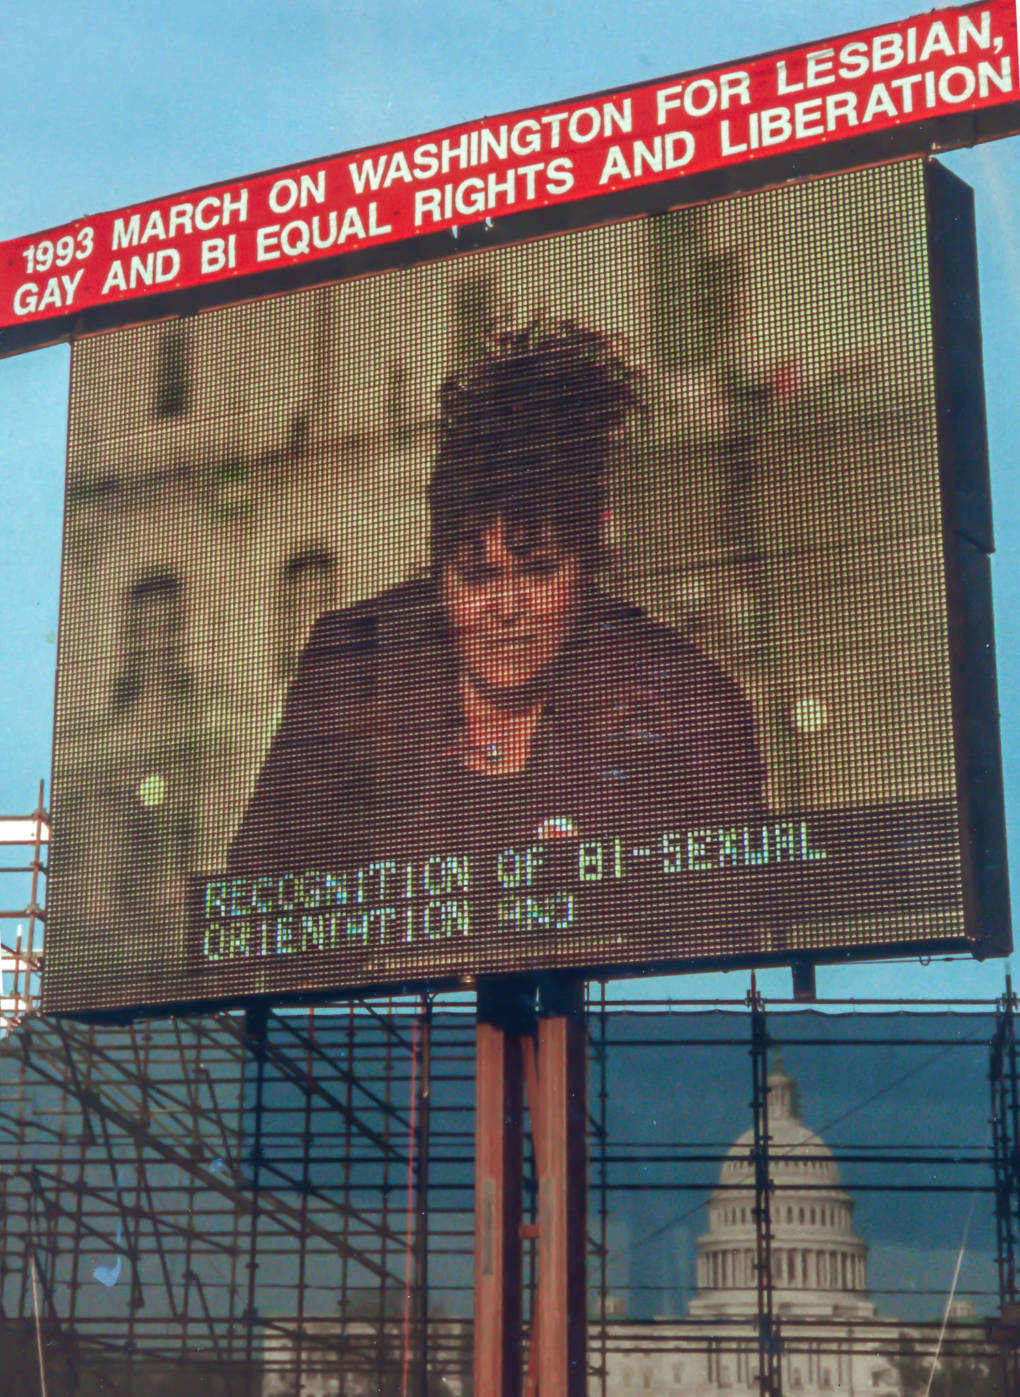 Ka'ahumanu was the only out bisexual invited to speak on the main stage at the 1993 March on Washington.